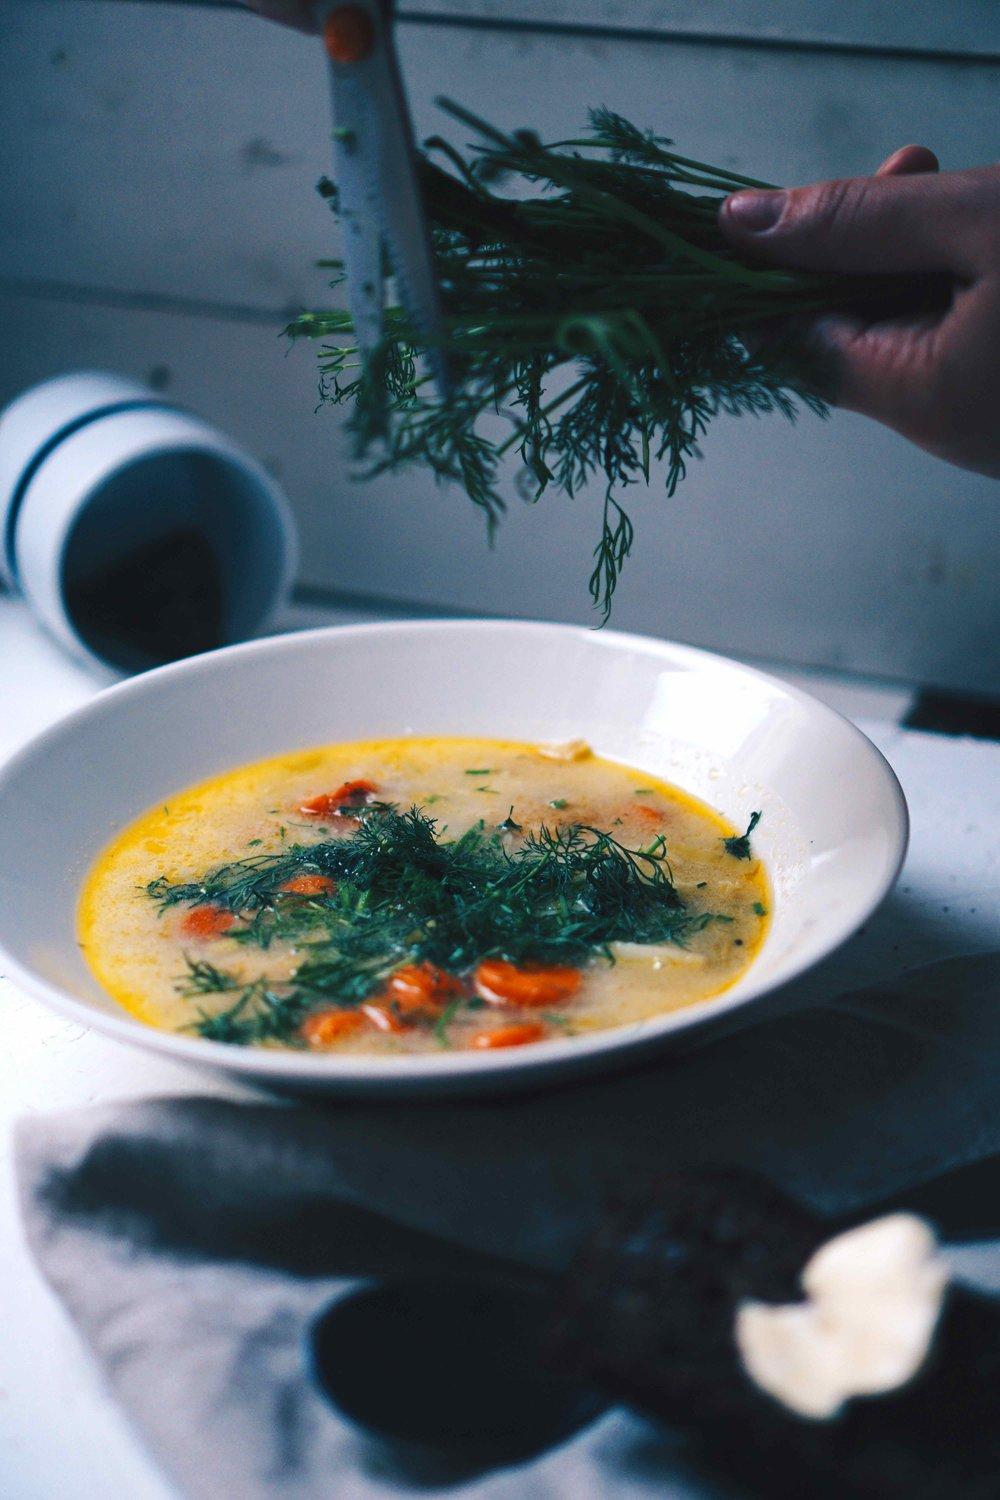 I ended up scissoring way too much dill on top of the soup during our photo-shoot.